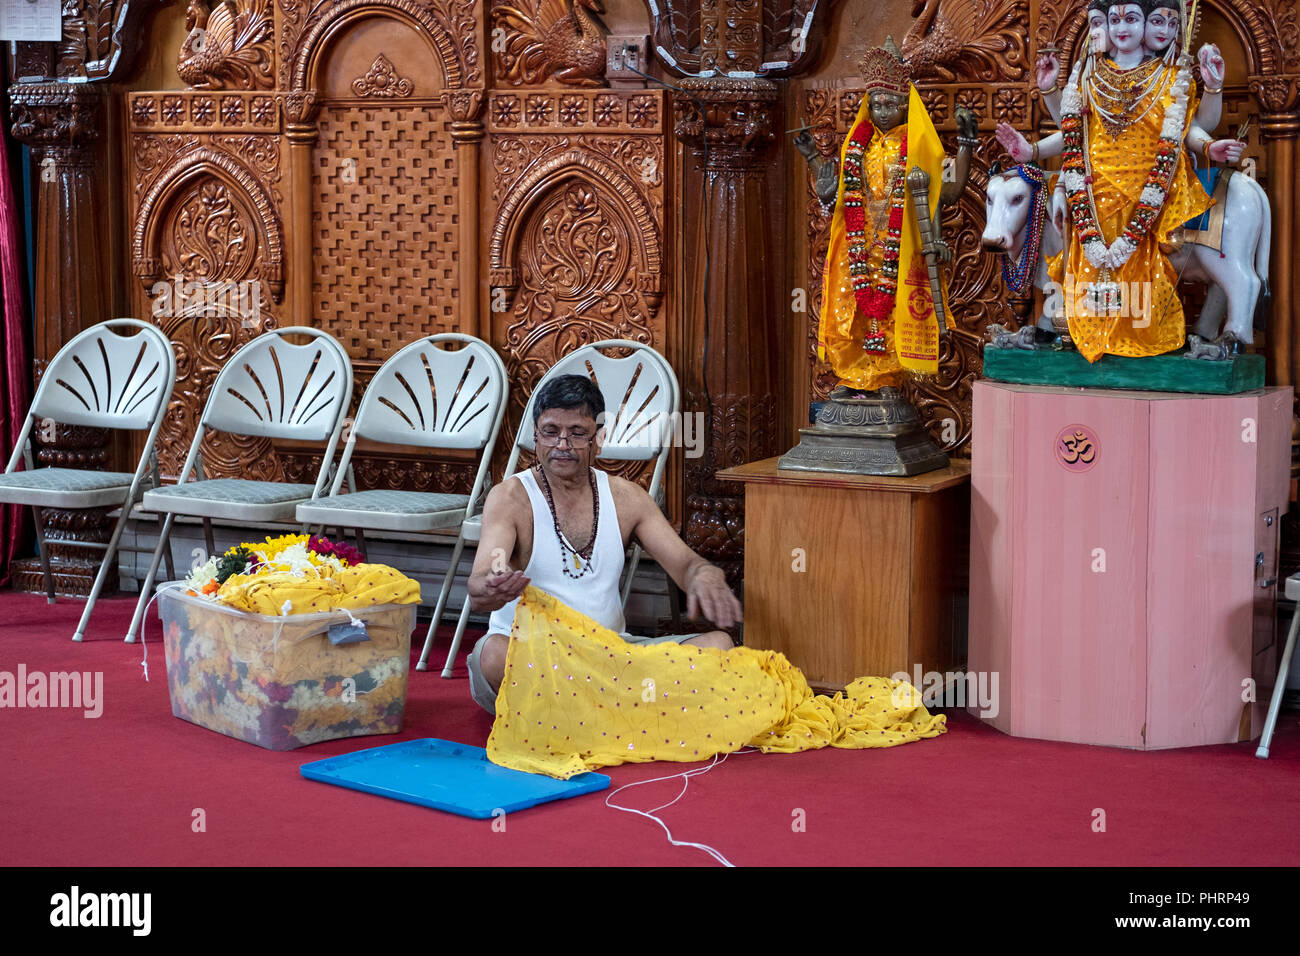 An Indian worker at the Geeta temple sewing costumes that will be put on the statues of the deities. In Queens, New York City. - Stock Image